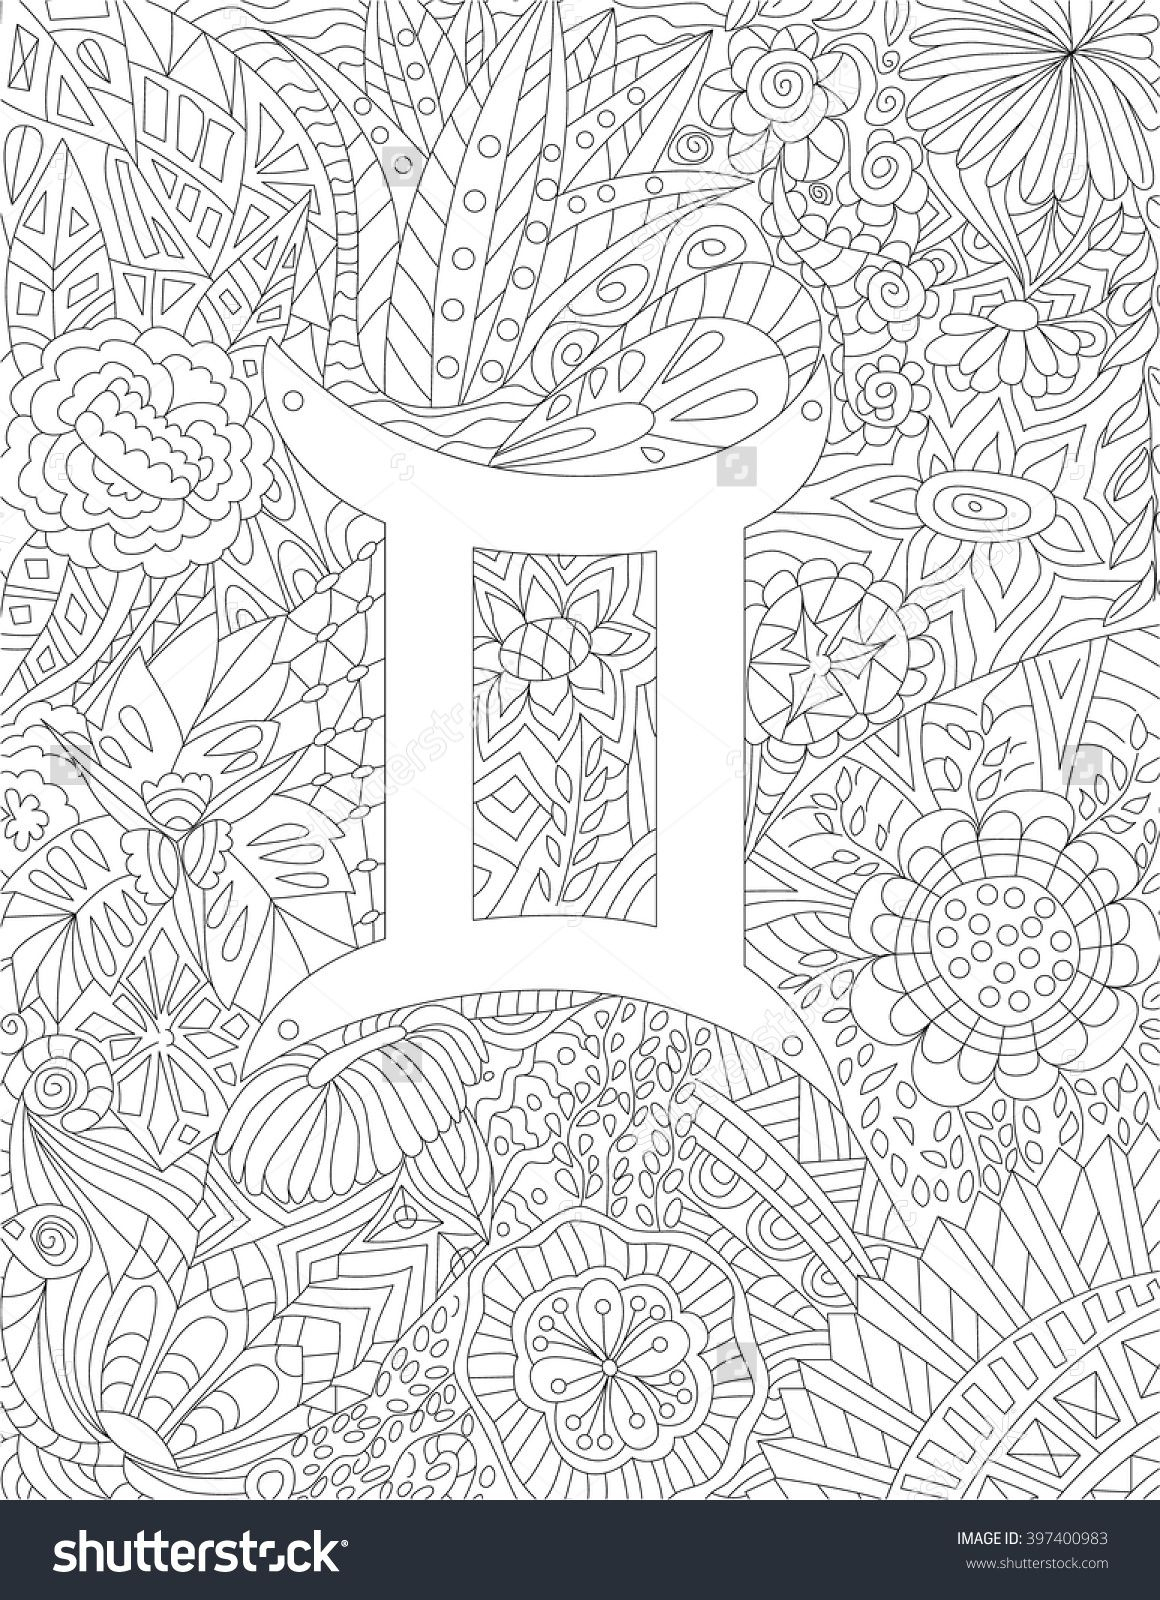 Zodiac Sign Gemini Floral Geometric Doodle Pattern Coloring Page - Free Printable Doodle Patterns